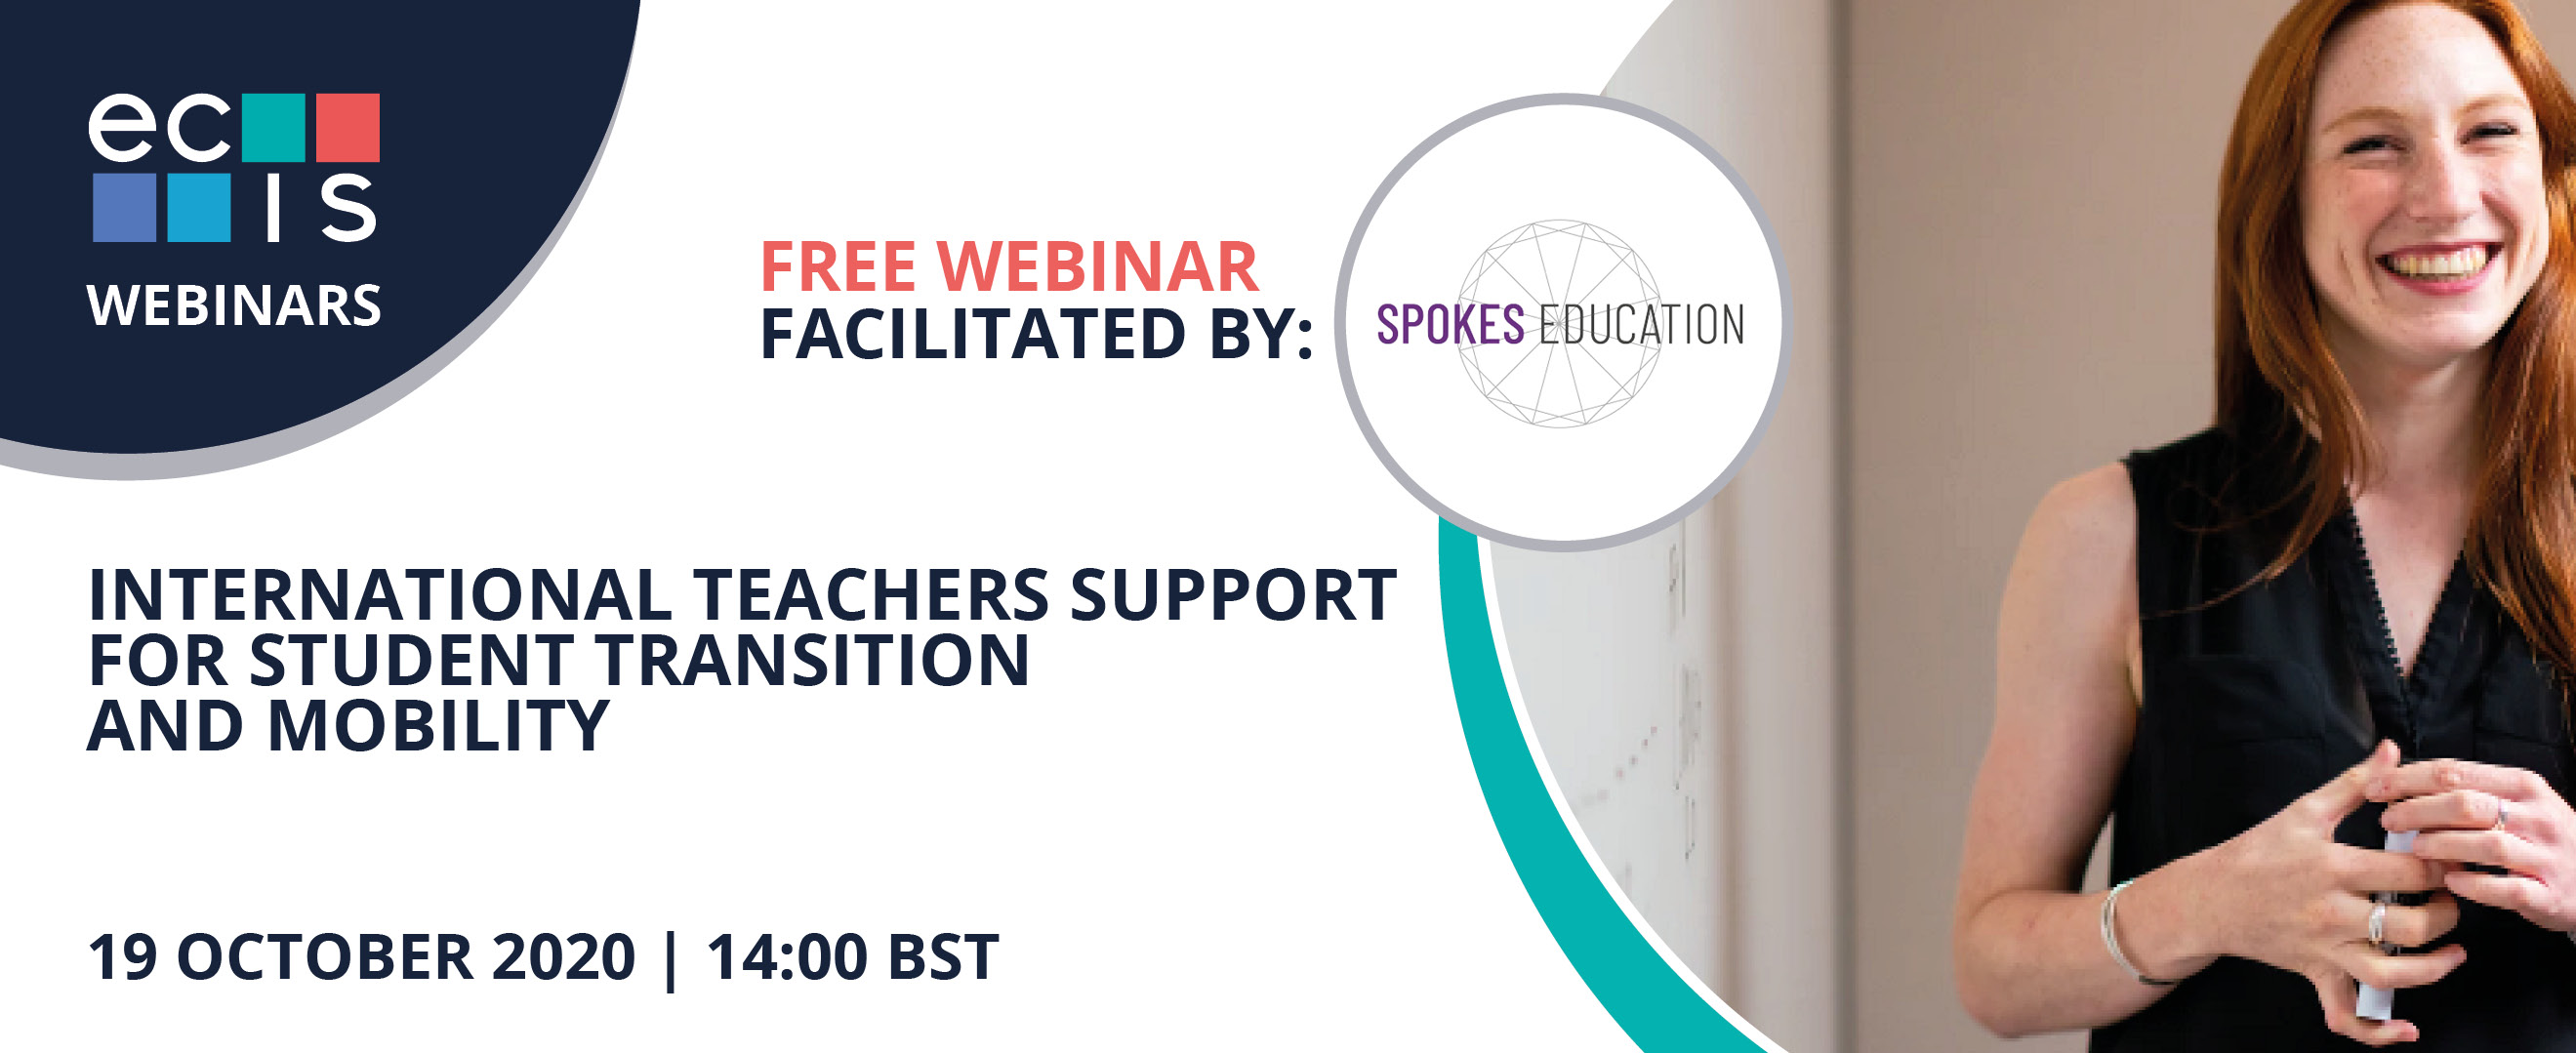 ECIS/SPOKES WEBINAR: International Teachers support for Student transition and mobility